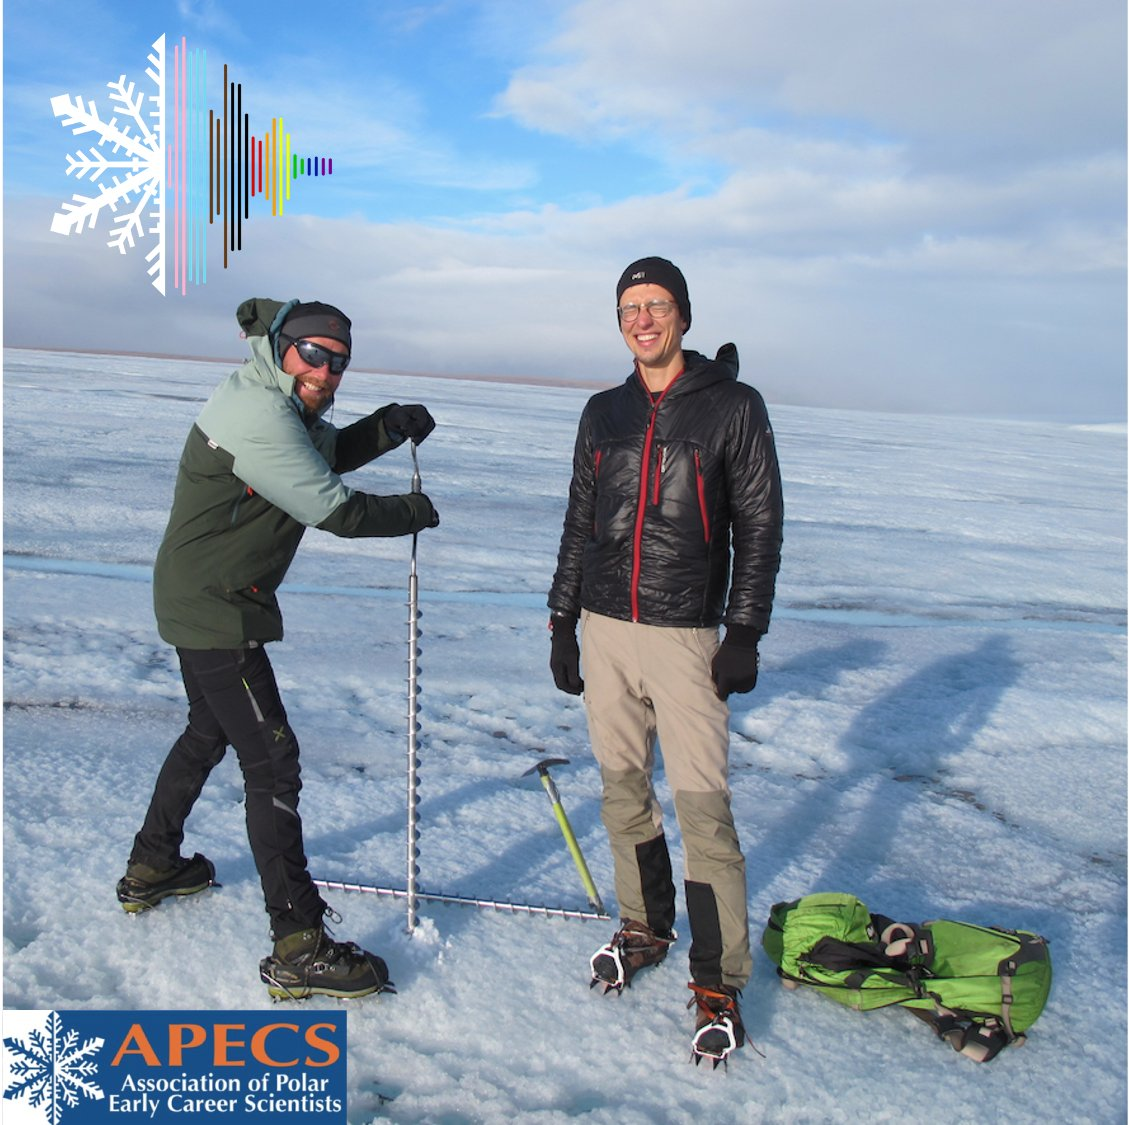 New episode of #PolarTimes now available for your listening! Alexandra chats to @ICIMOD's Jakob Steiner (@yaqoobsufi) about the #ThirdPole, fieldwork in the Himalayas (& many other places!), working w local people and classical music! #Arctic #podcast @M_T_Bravo